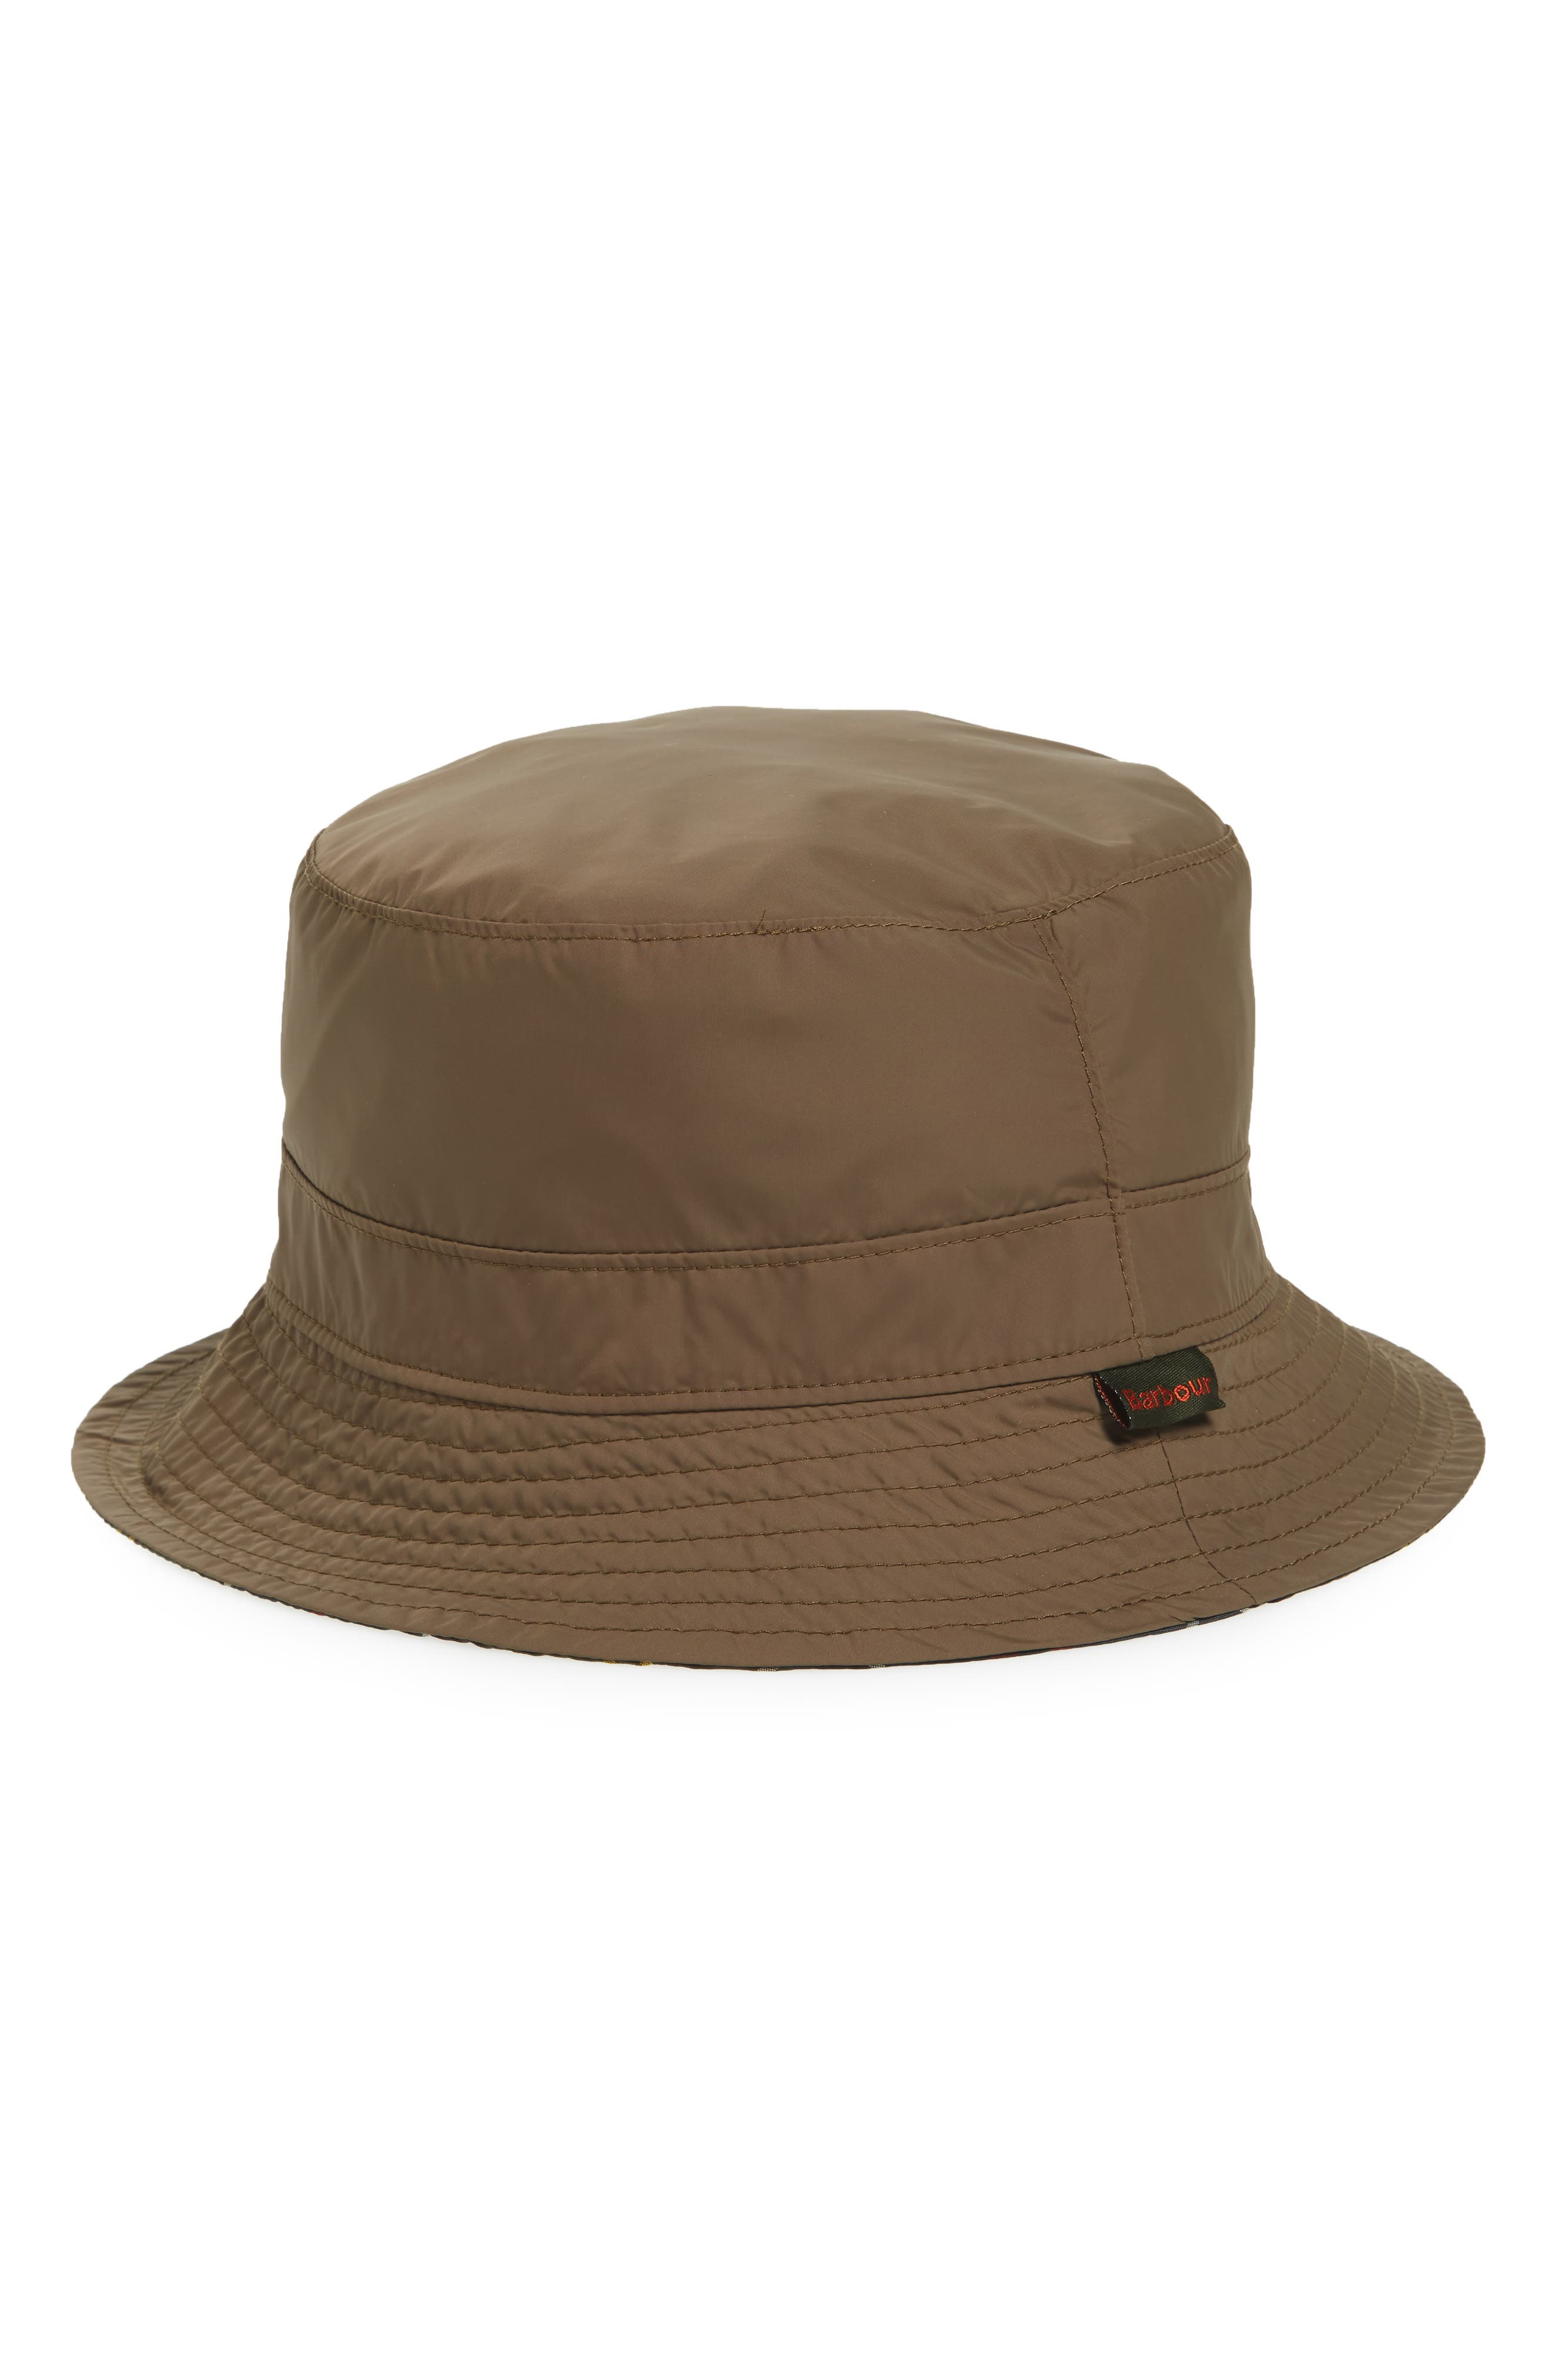 Reversible Bucket Hat,                             Alternate thumbnail 3, color,                             210